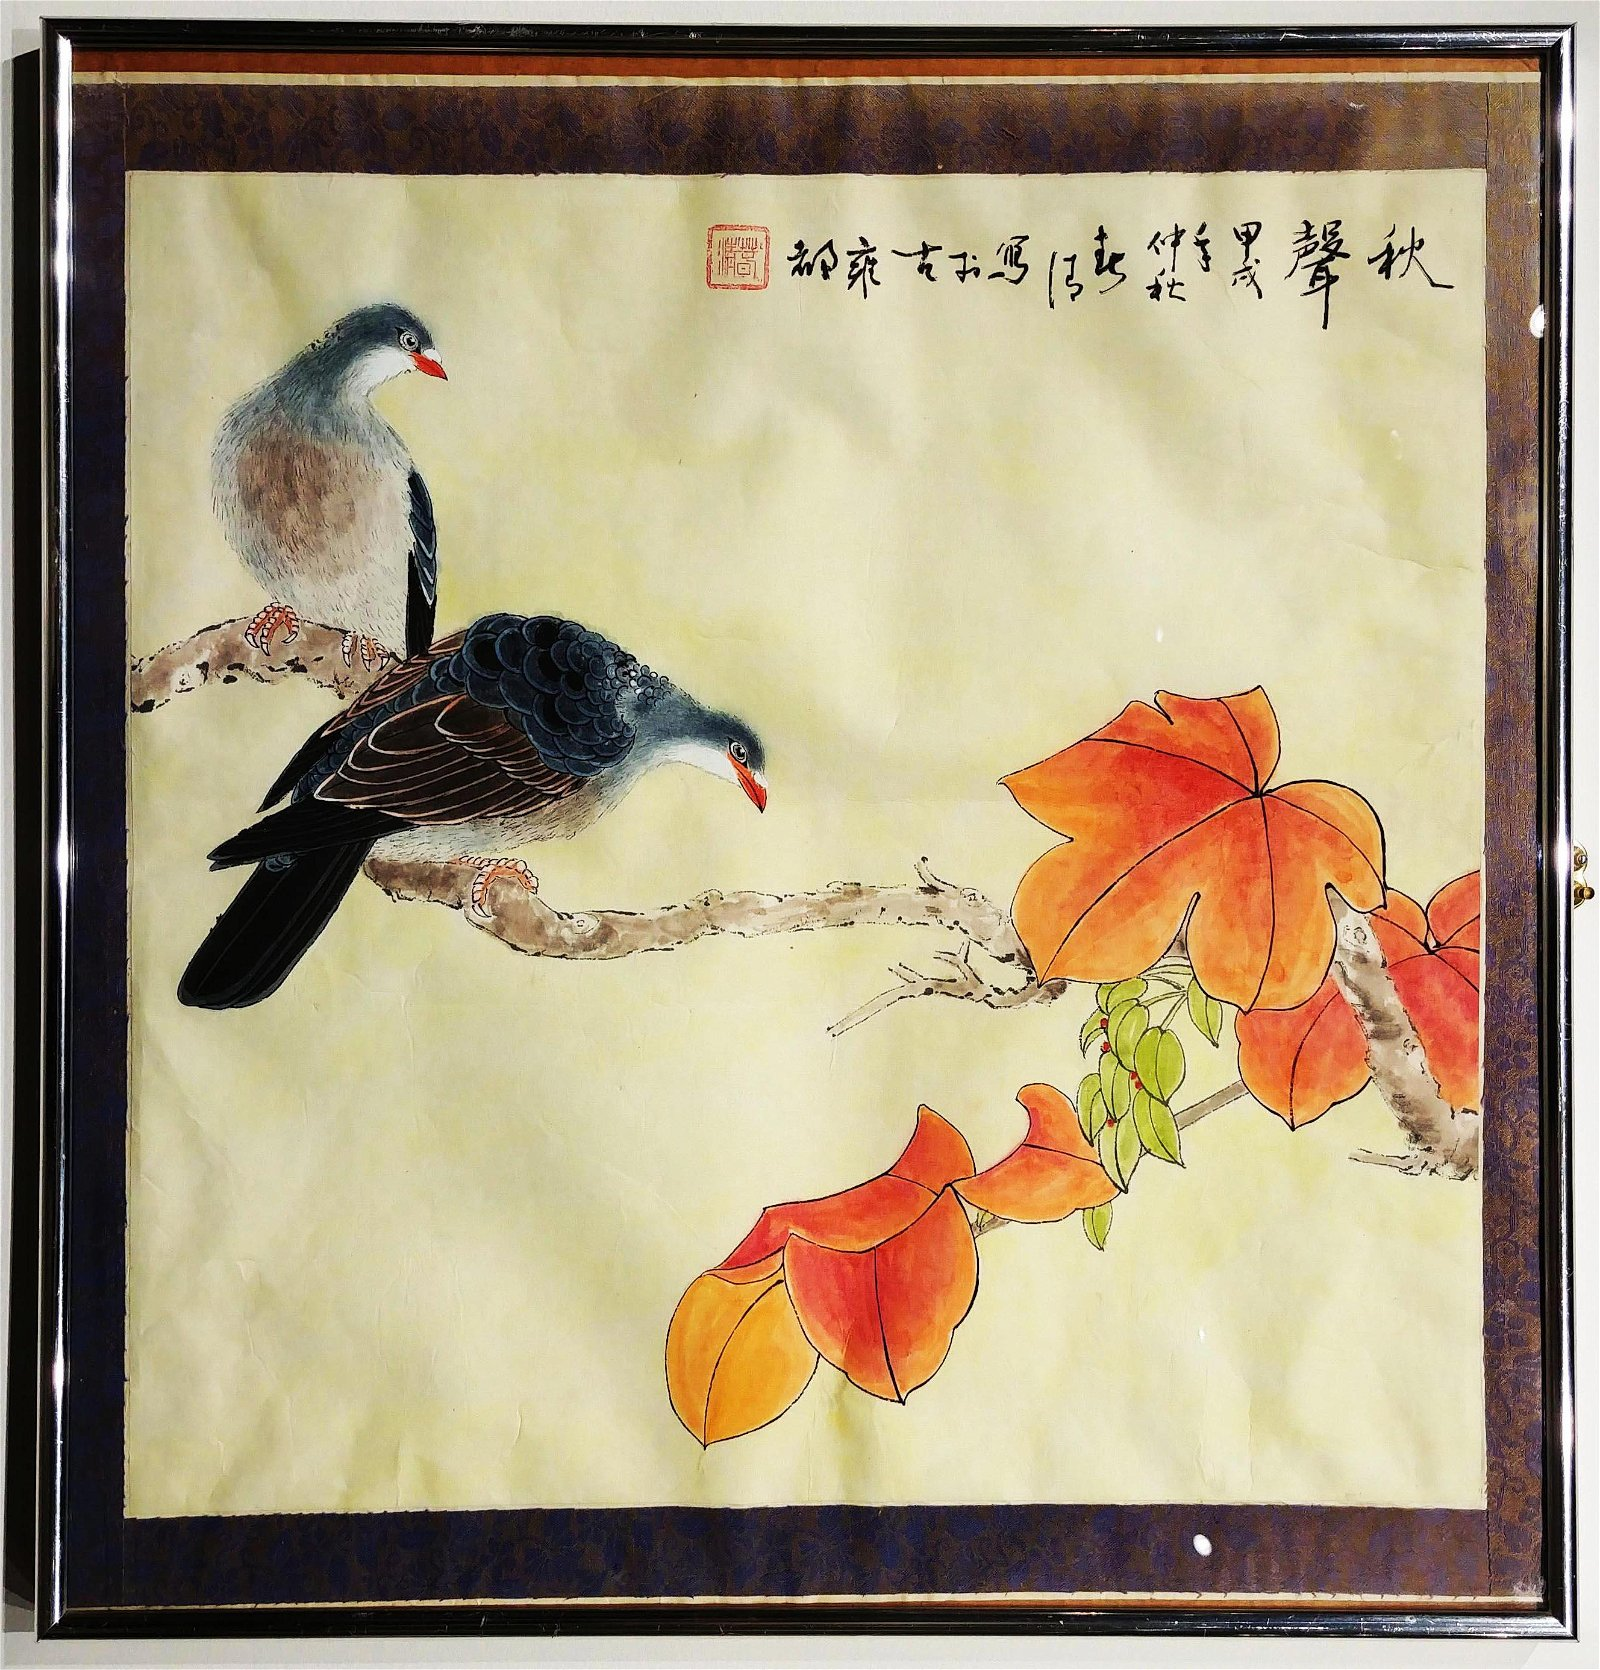 Fine Chinese Painting on Paper, Signed & Stamped